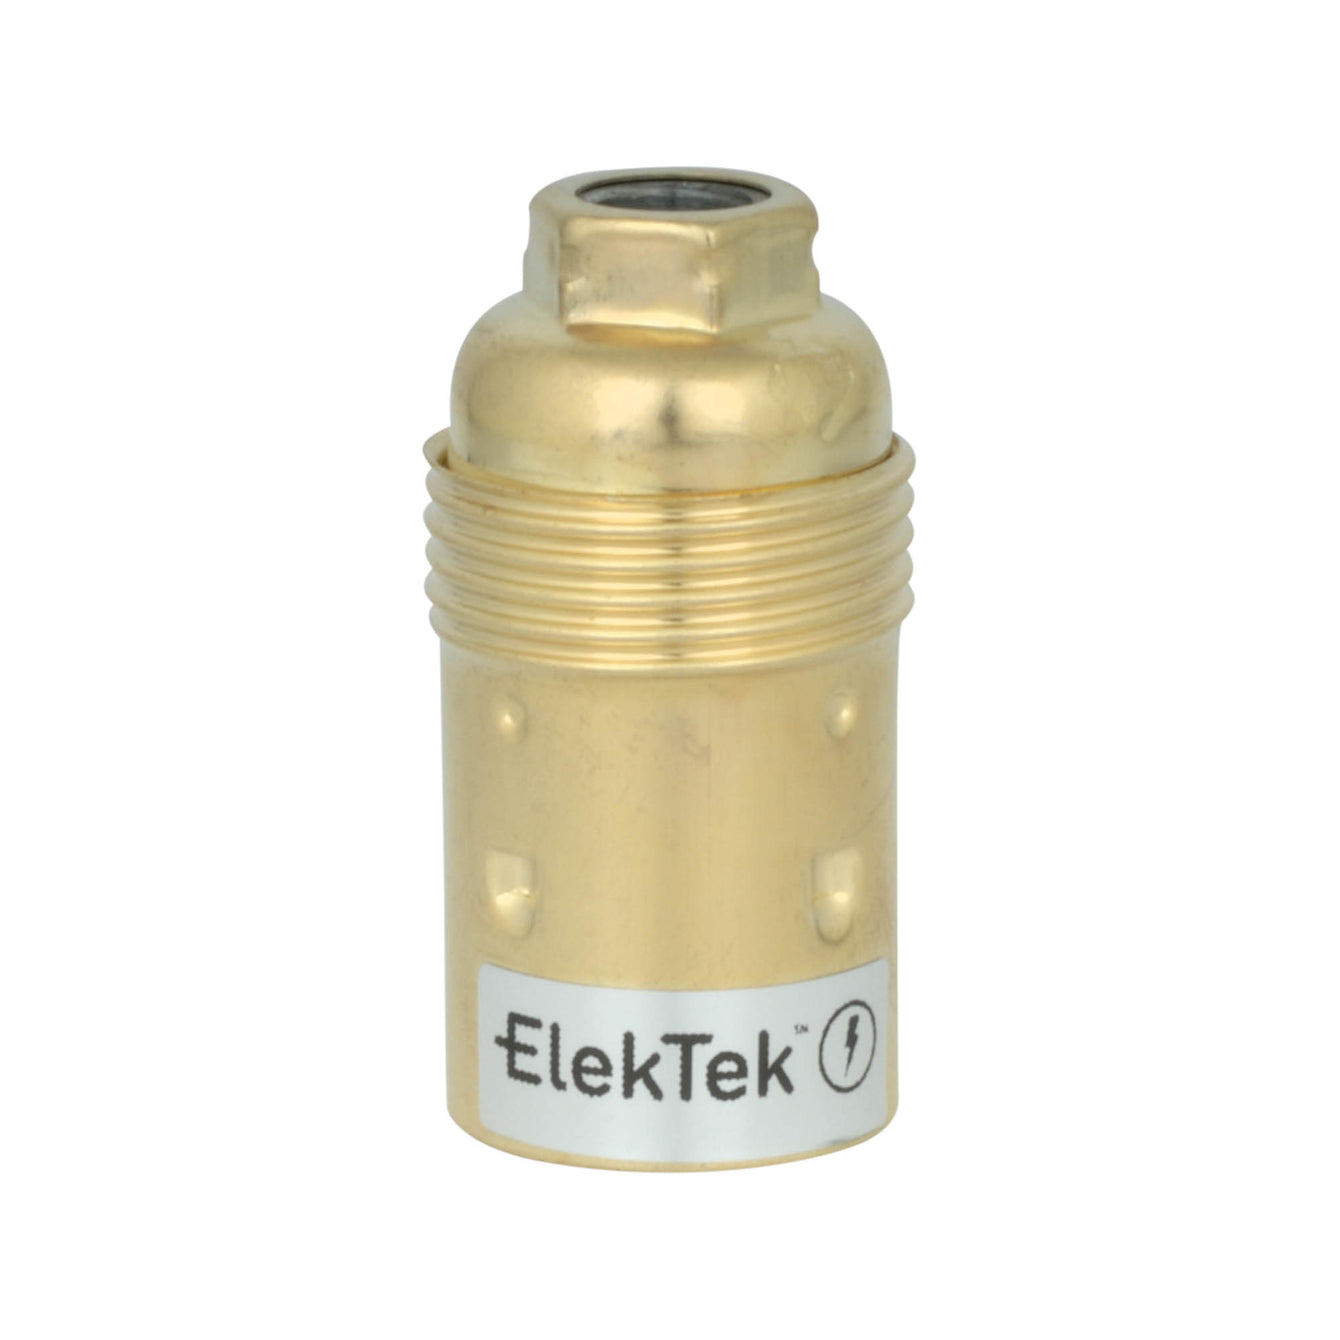 ElekTek SES E14 Lamp Holder 10mm Entry Small Edison Screw Earthed Plain Skirt Cord Grip Brass - Buy It Better Nickel